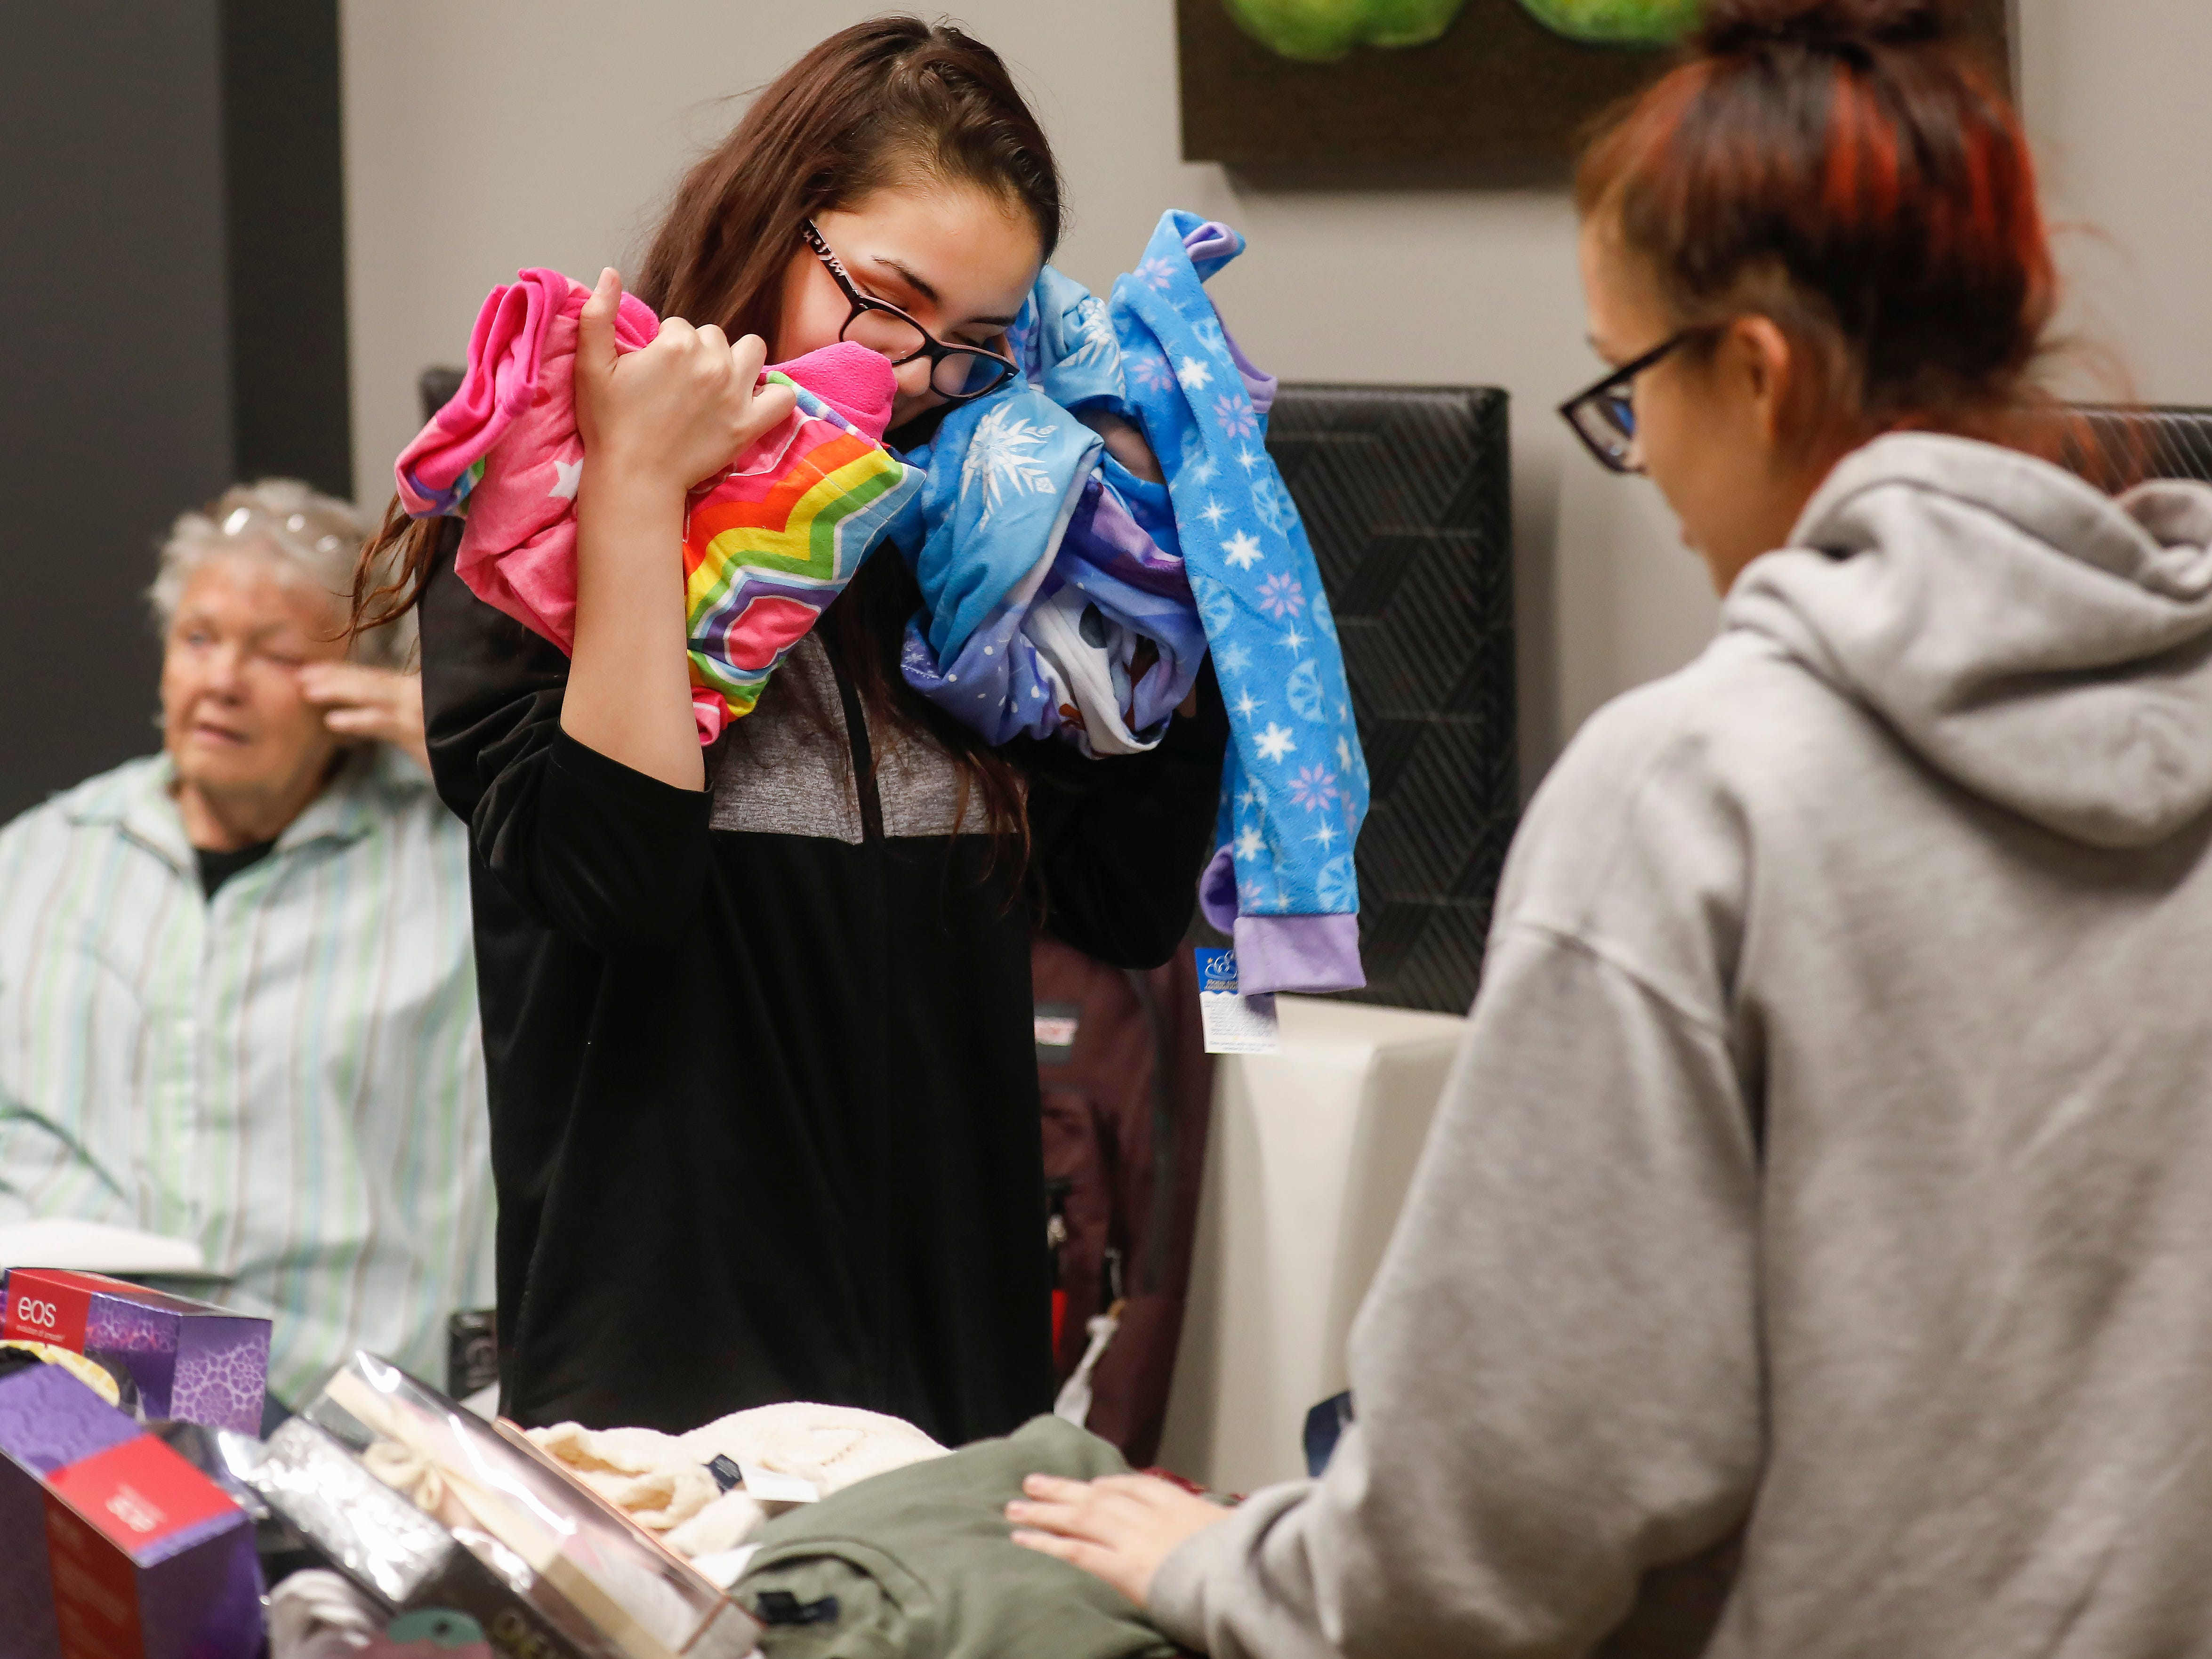 Abigail Sahagun, center, hugs some items of clothing that were a part of the gifts that were given to her and her sisters by employees of J.D. Byrider on Wednesday, Dec. 19, 2018. The Sahaguns' grandmother, Barbara Foster, was killed during a road rage incident on Nov. 20.